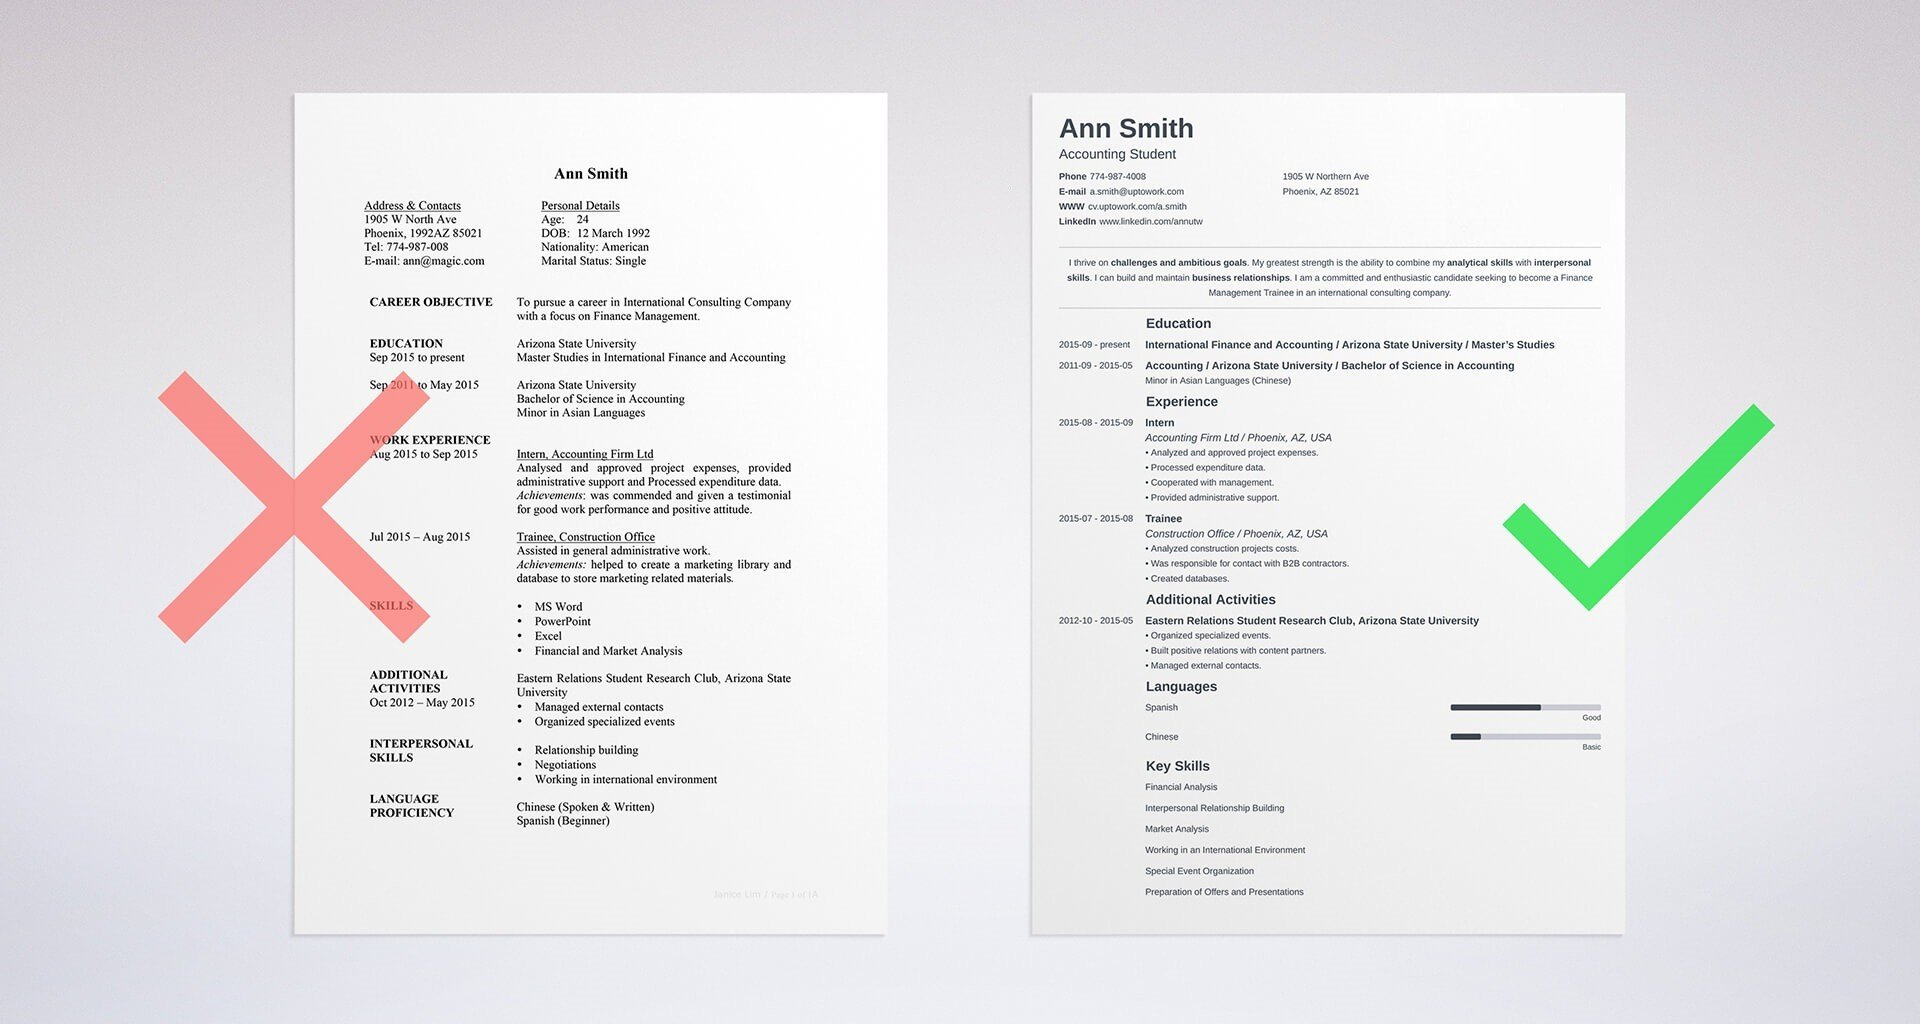 best resume tips tricks writing advice samples for making great business analyst examples Resume Tips For Making A Great Resume